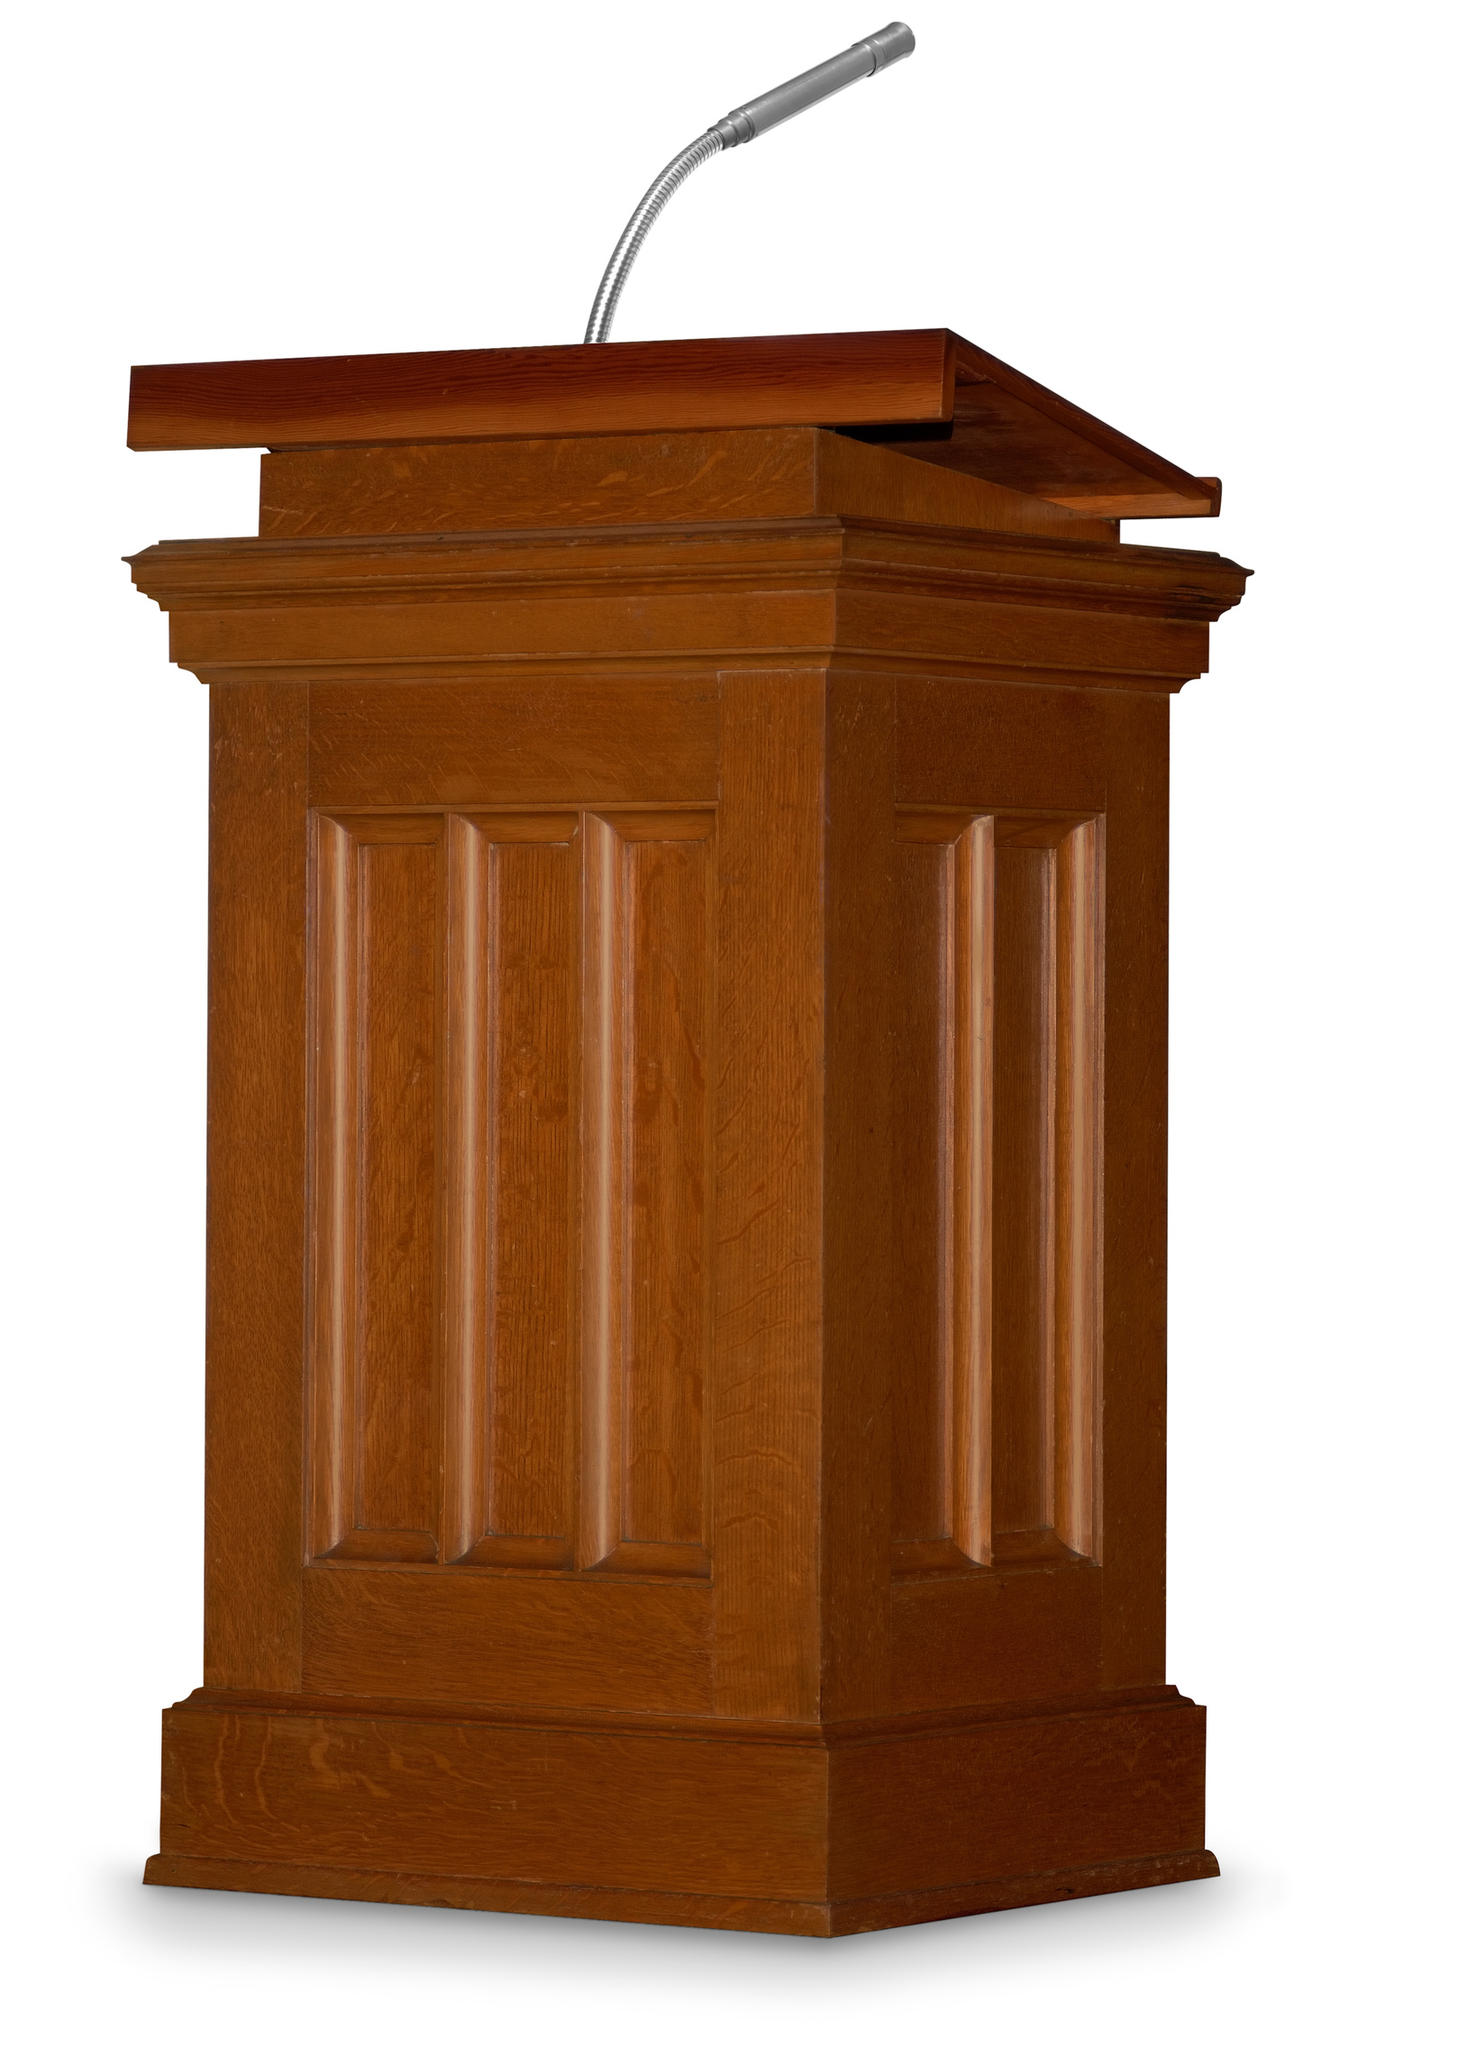 Free Speech Podium Cliparts, Download Free Clip Art, Free.